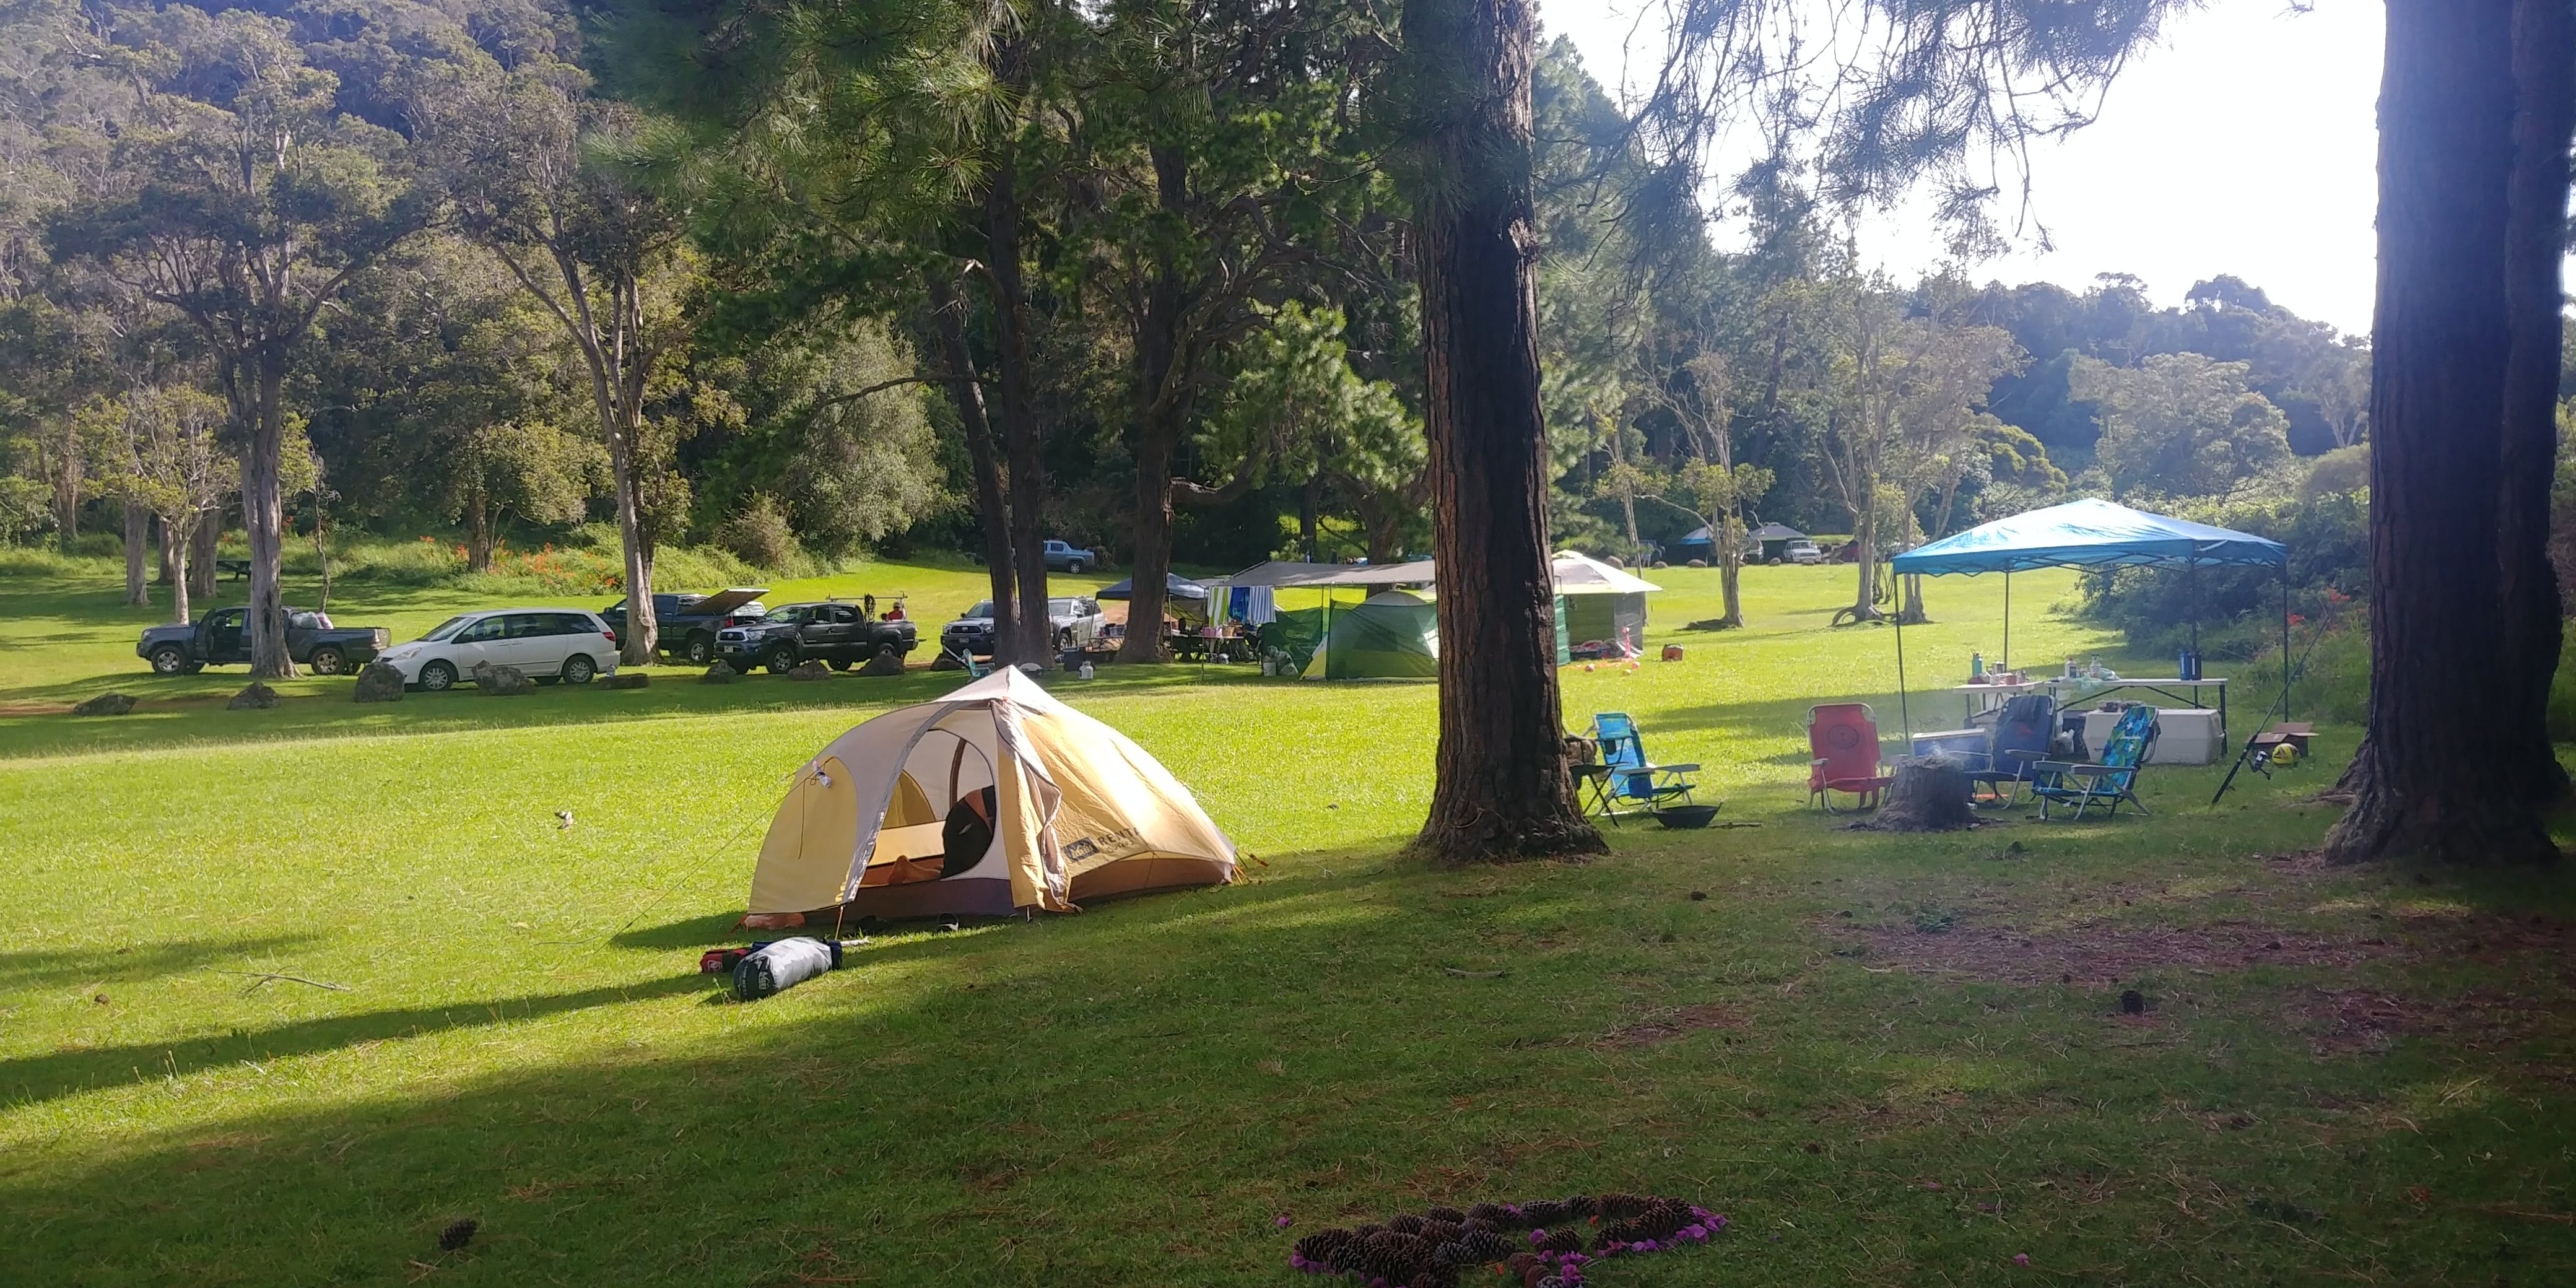 Kokee Campground - Kokee State Park - Kauai, HI | The Dyrt on clifty falls state park trail map, waimea canyon state park map, anza-borrego state park trail map, na pali coast kauai trail map, na pali coast state park map, watoga state park trail map, lake norman state park trail map, cunningham falls state park trail map, cherry creek state park trail map, castle rock state park trail map, waimea canyon trail map, high point state park trail map, shawnee state forest backpack trail map, hanalei trail map, brown county state park trail map, canaan valley state park trail map, nockamixon state park trail map, oak mountain state park trail map, iao valley state park trail map, kalalau trail trail map,